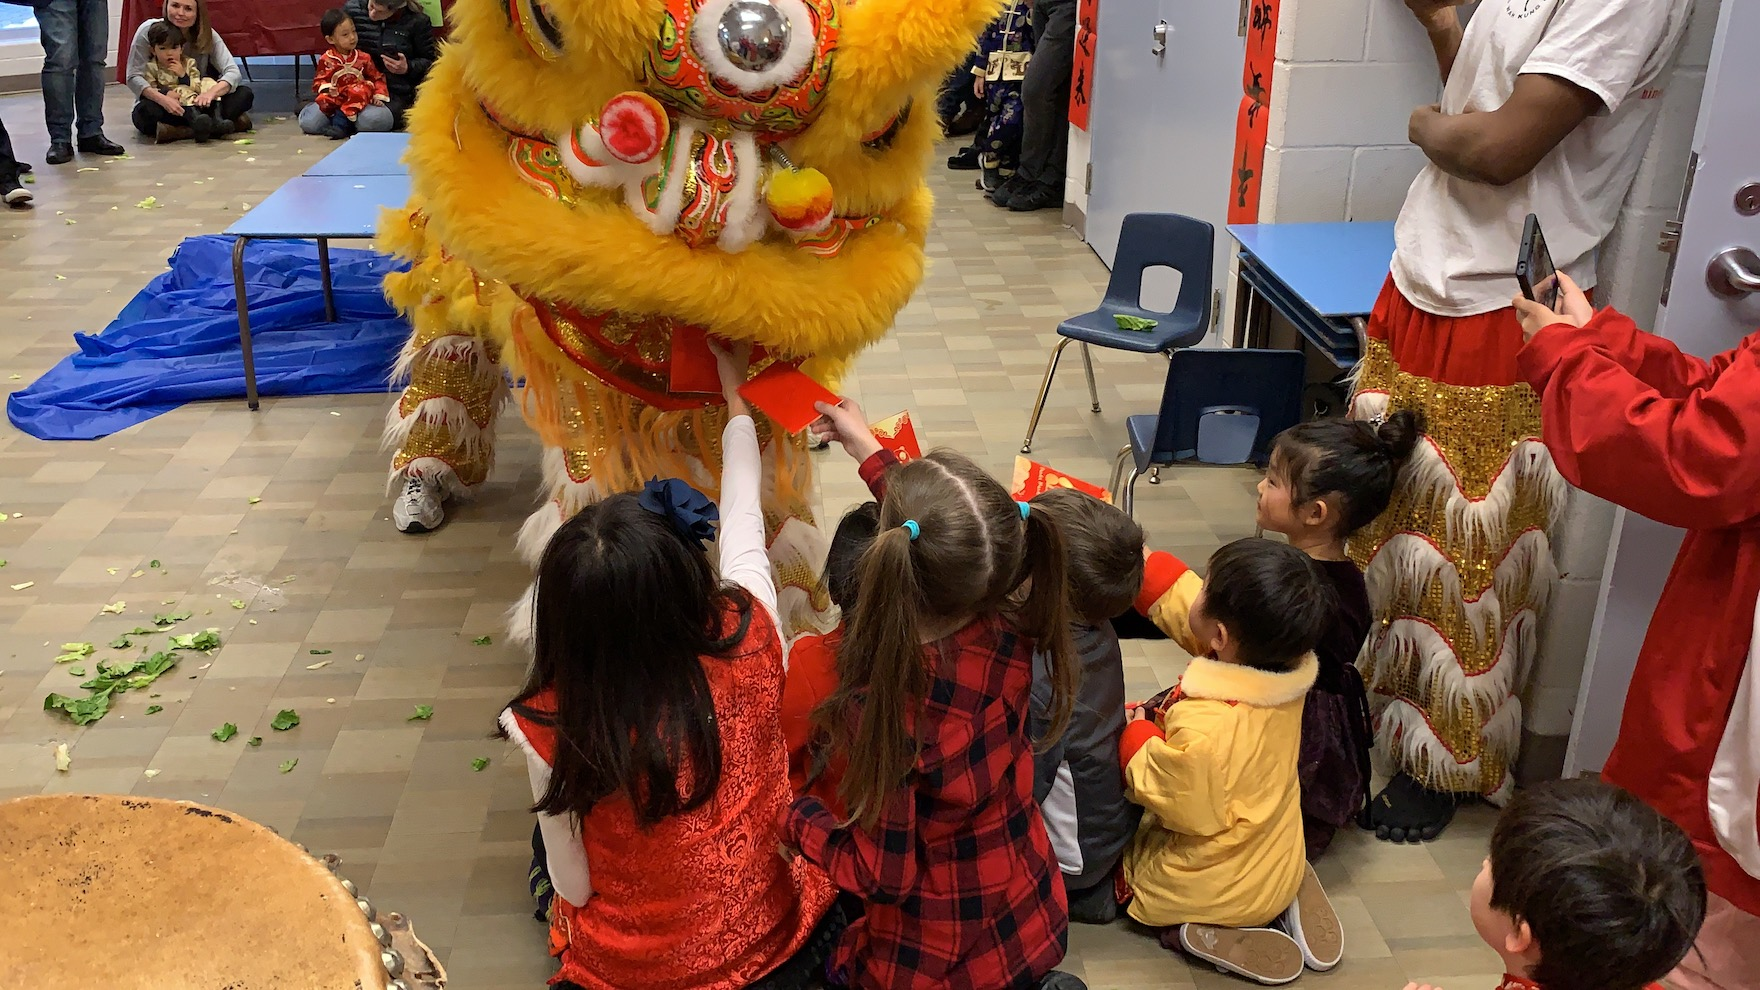 Giving lucky red pockets at the traditional lion dance